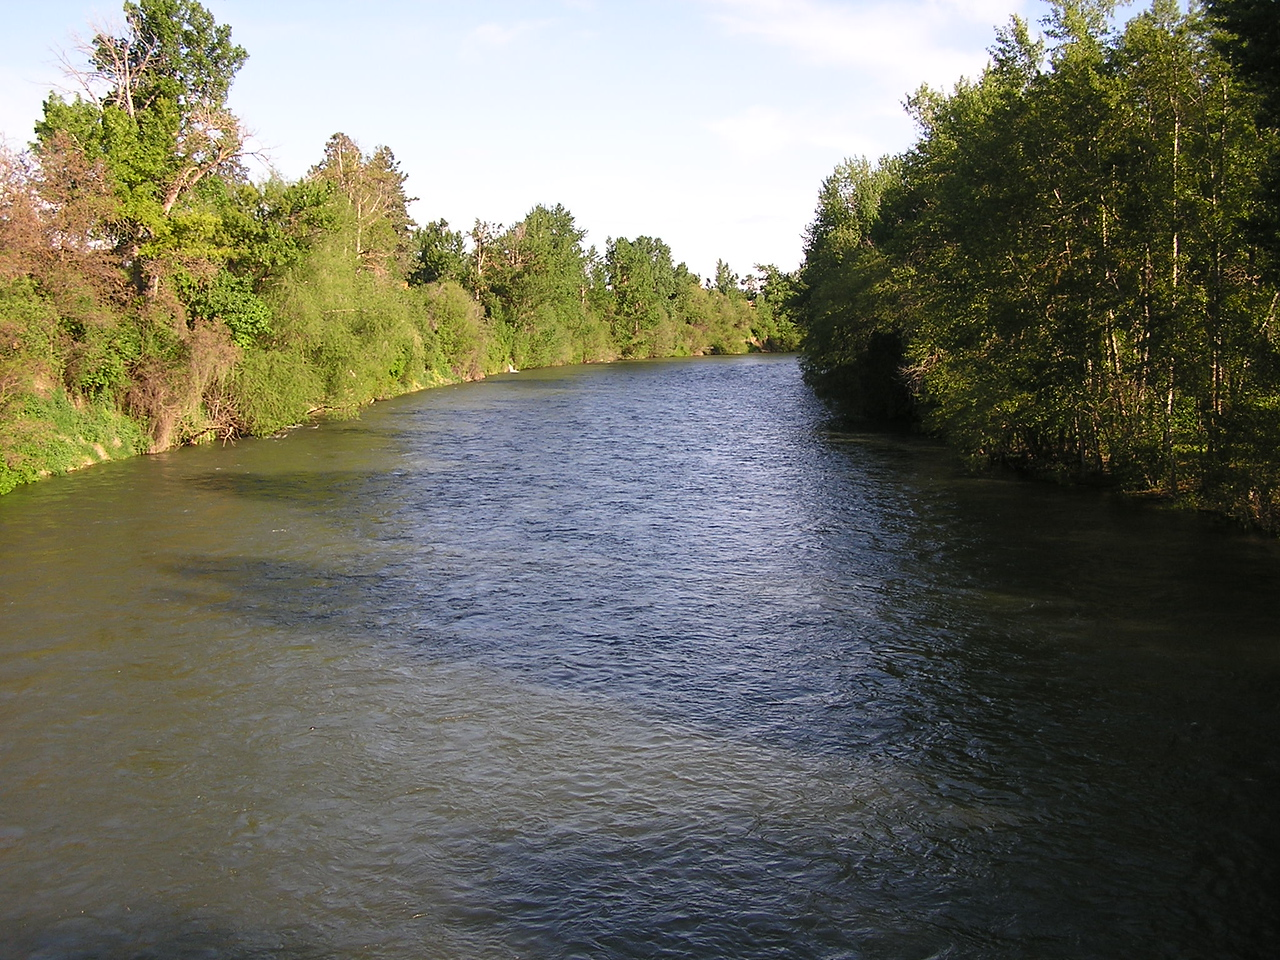 Yakima River from the bridge at Riverfront park.